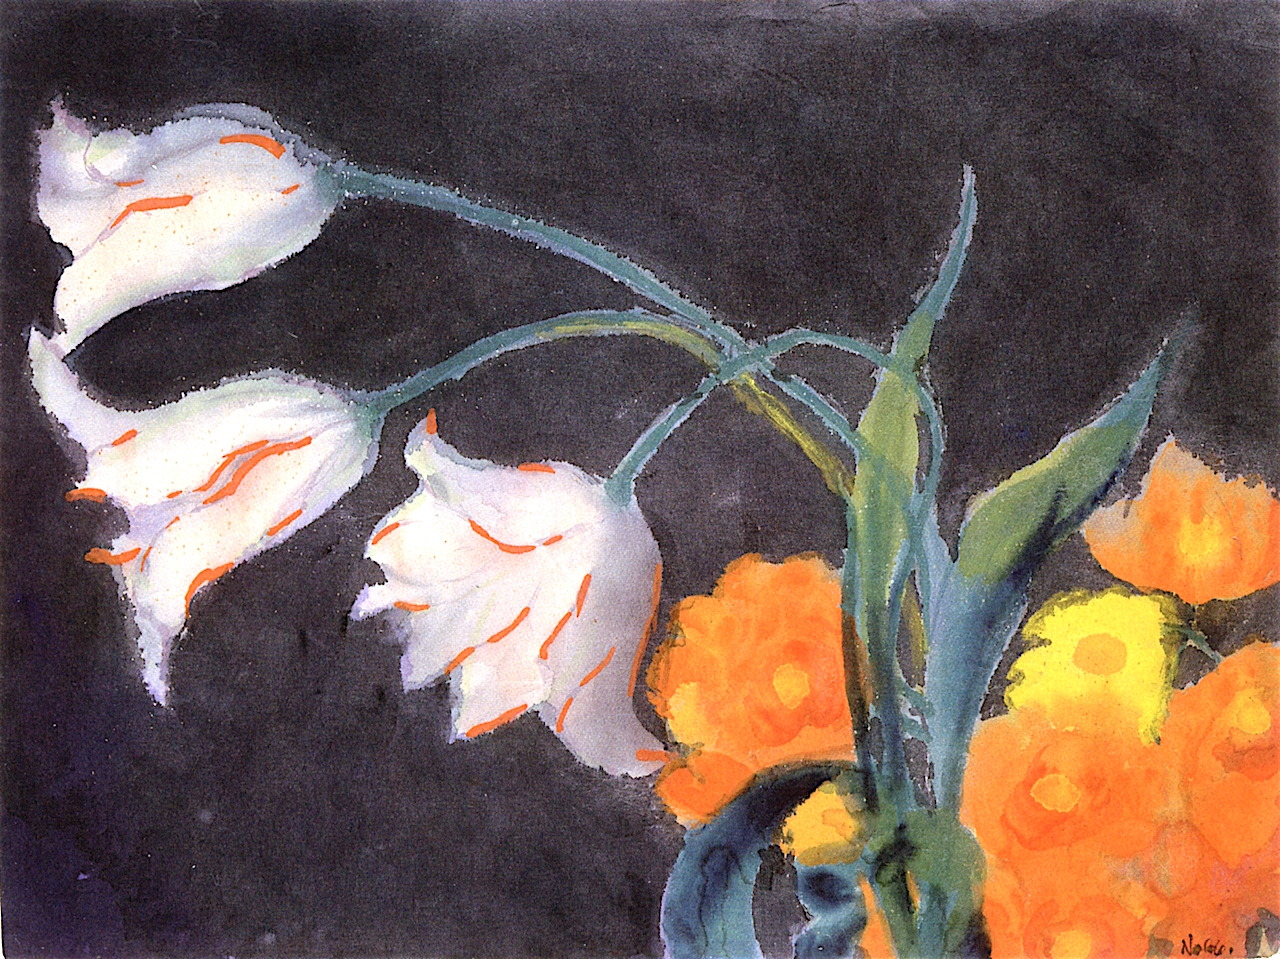 kundst: